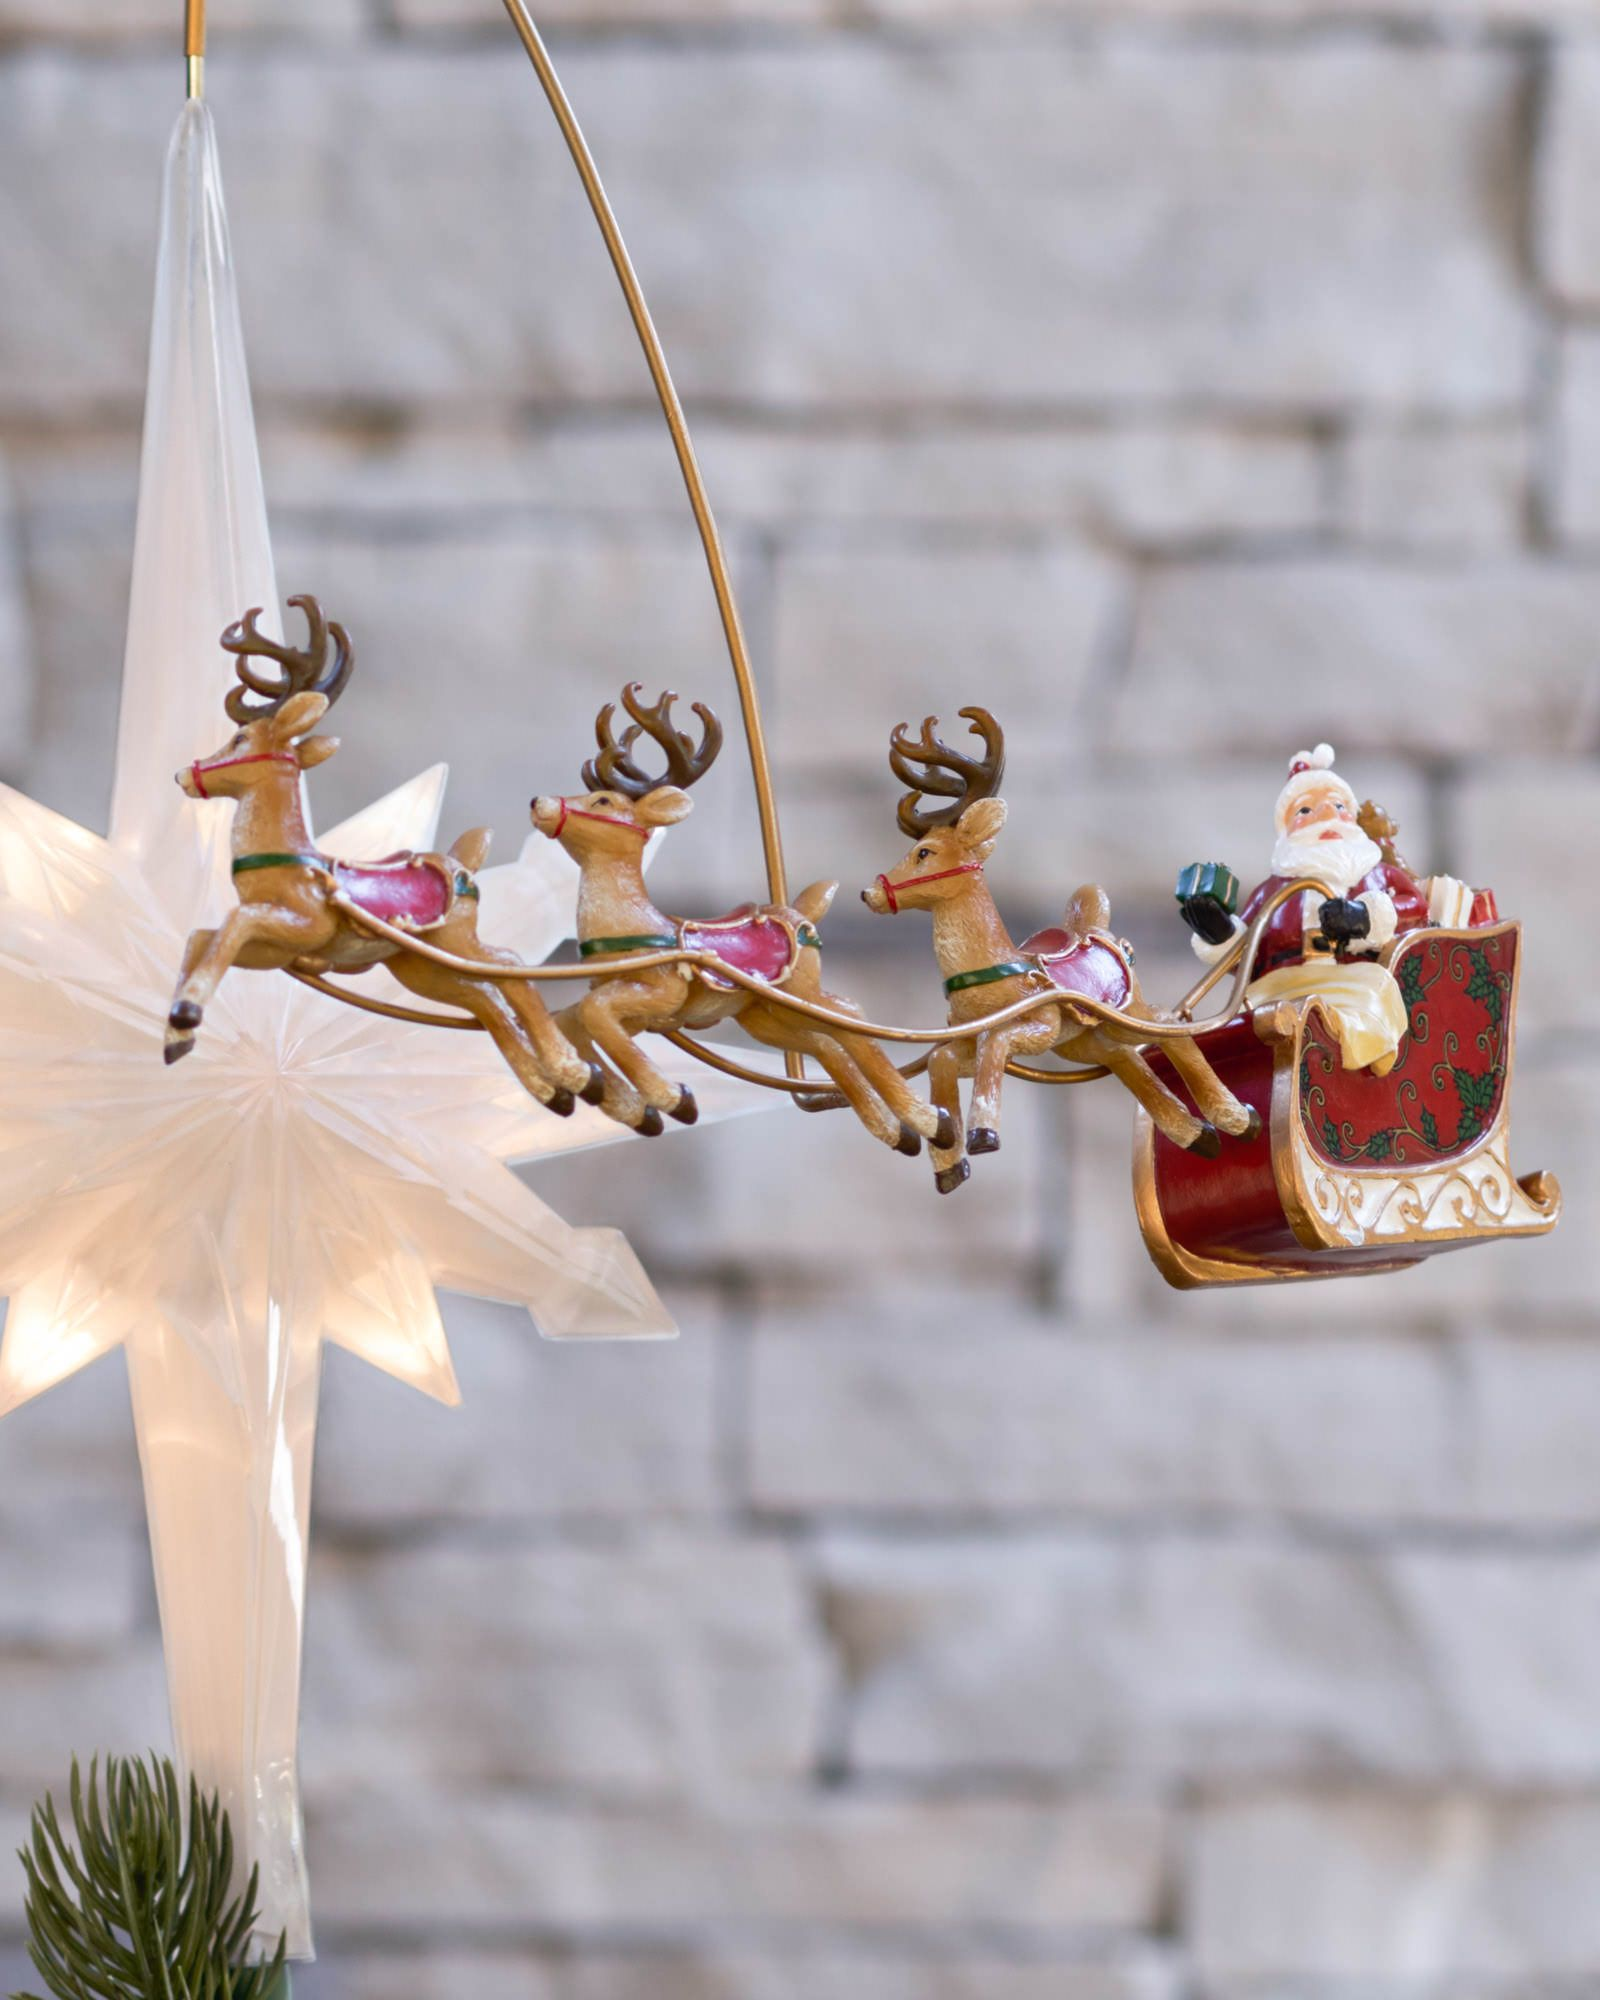 Sure to be adored by the young and young at heart, Santa's Sleigh Animated Christmas Tree Topper shows a Santa figurine upon his sleigh pulled by three reindeer, revolving around a bright yellow star. Get a chance to win this charming tree topper in our 12 Days Of Giveaways. gleam.io/fb/yseJA